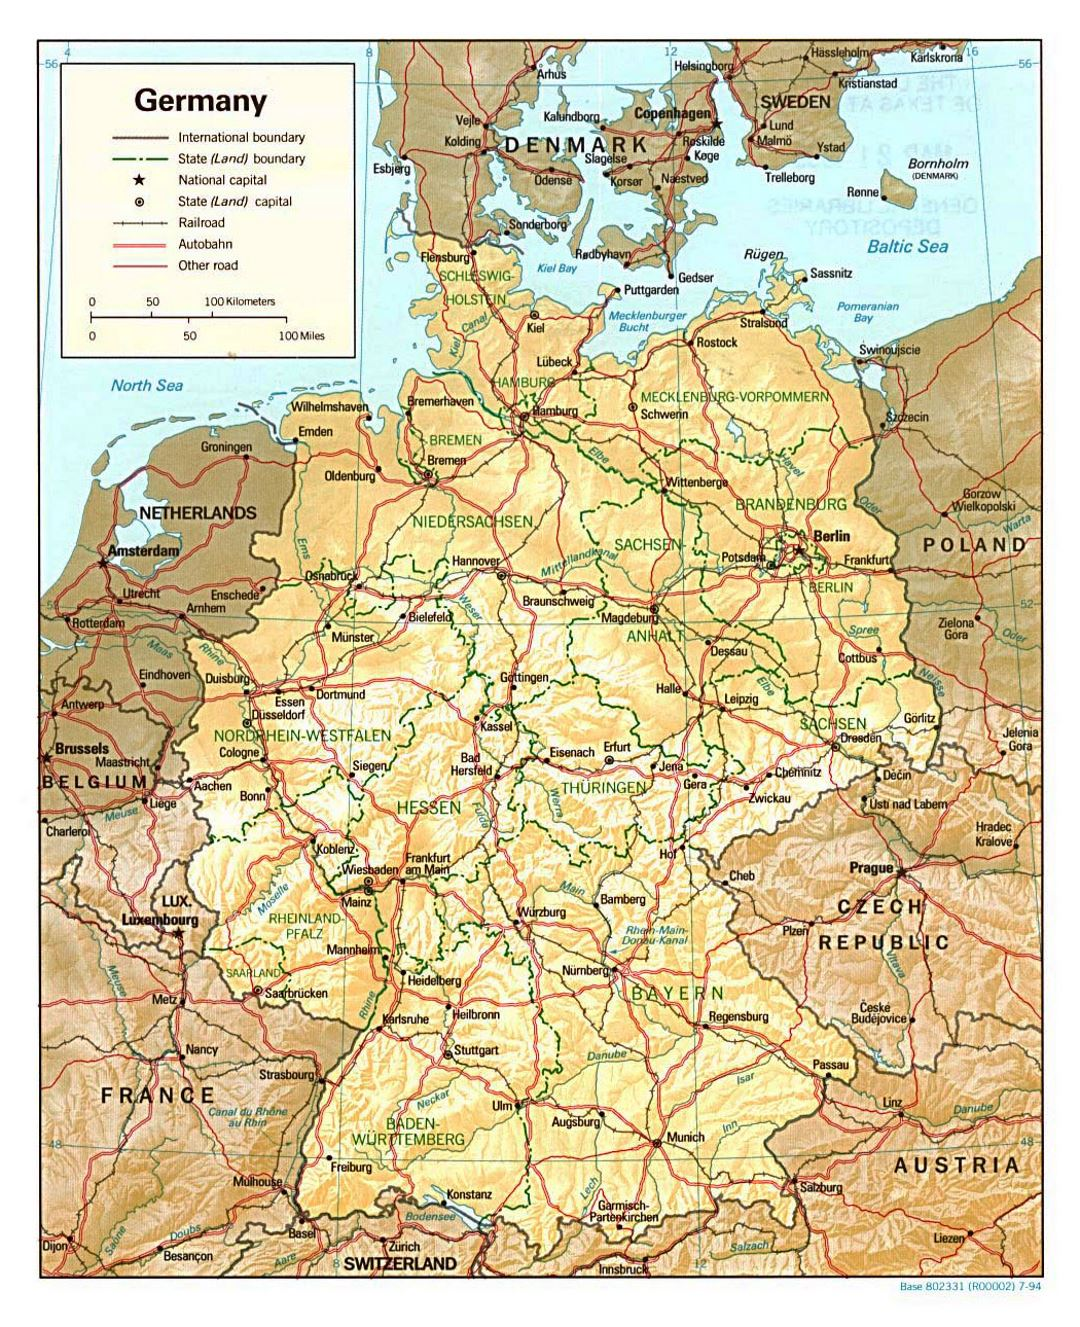 Detailed political and administrative map of Germany with relief, roads and major cities - 1994